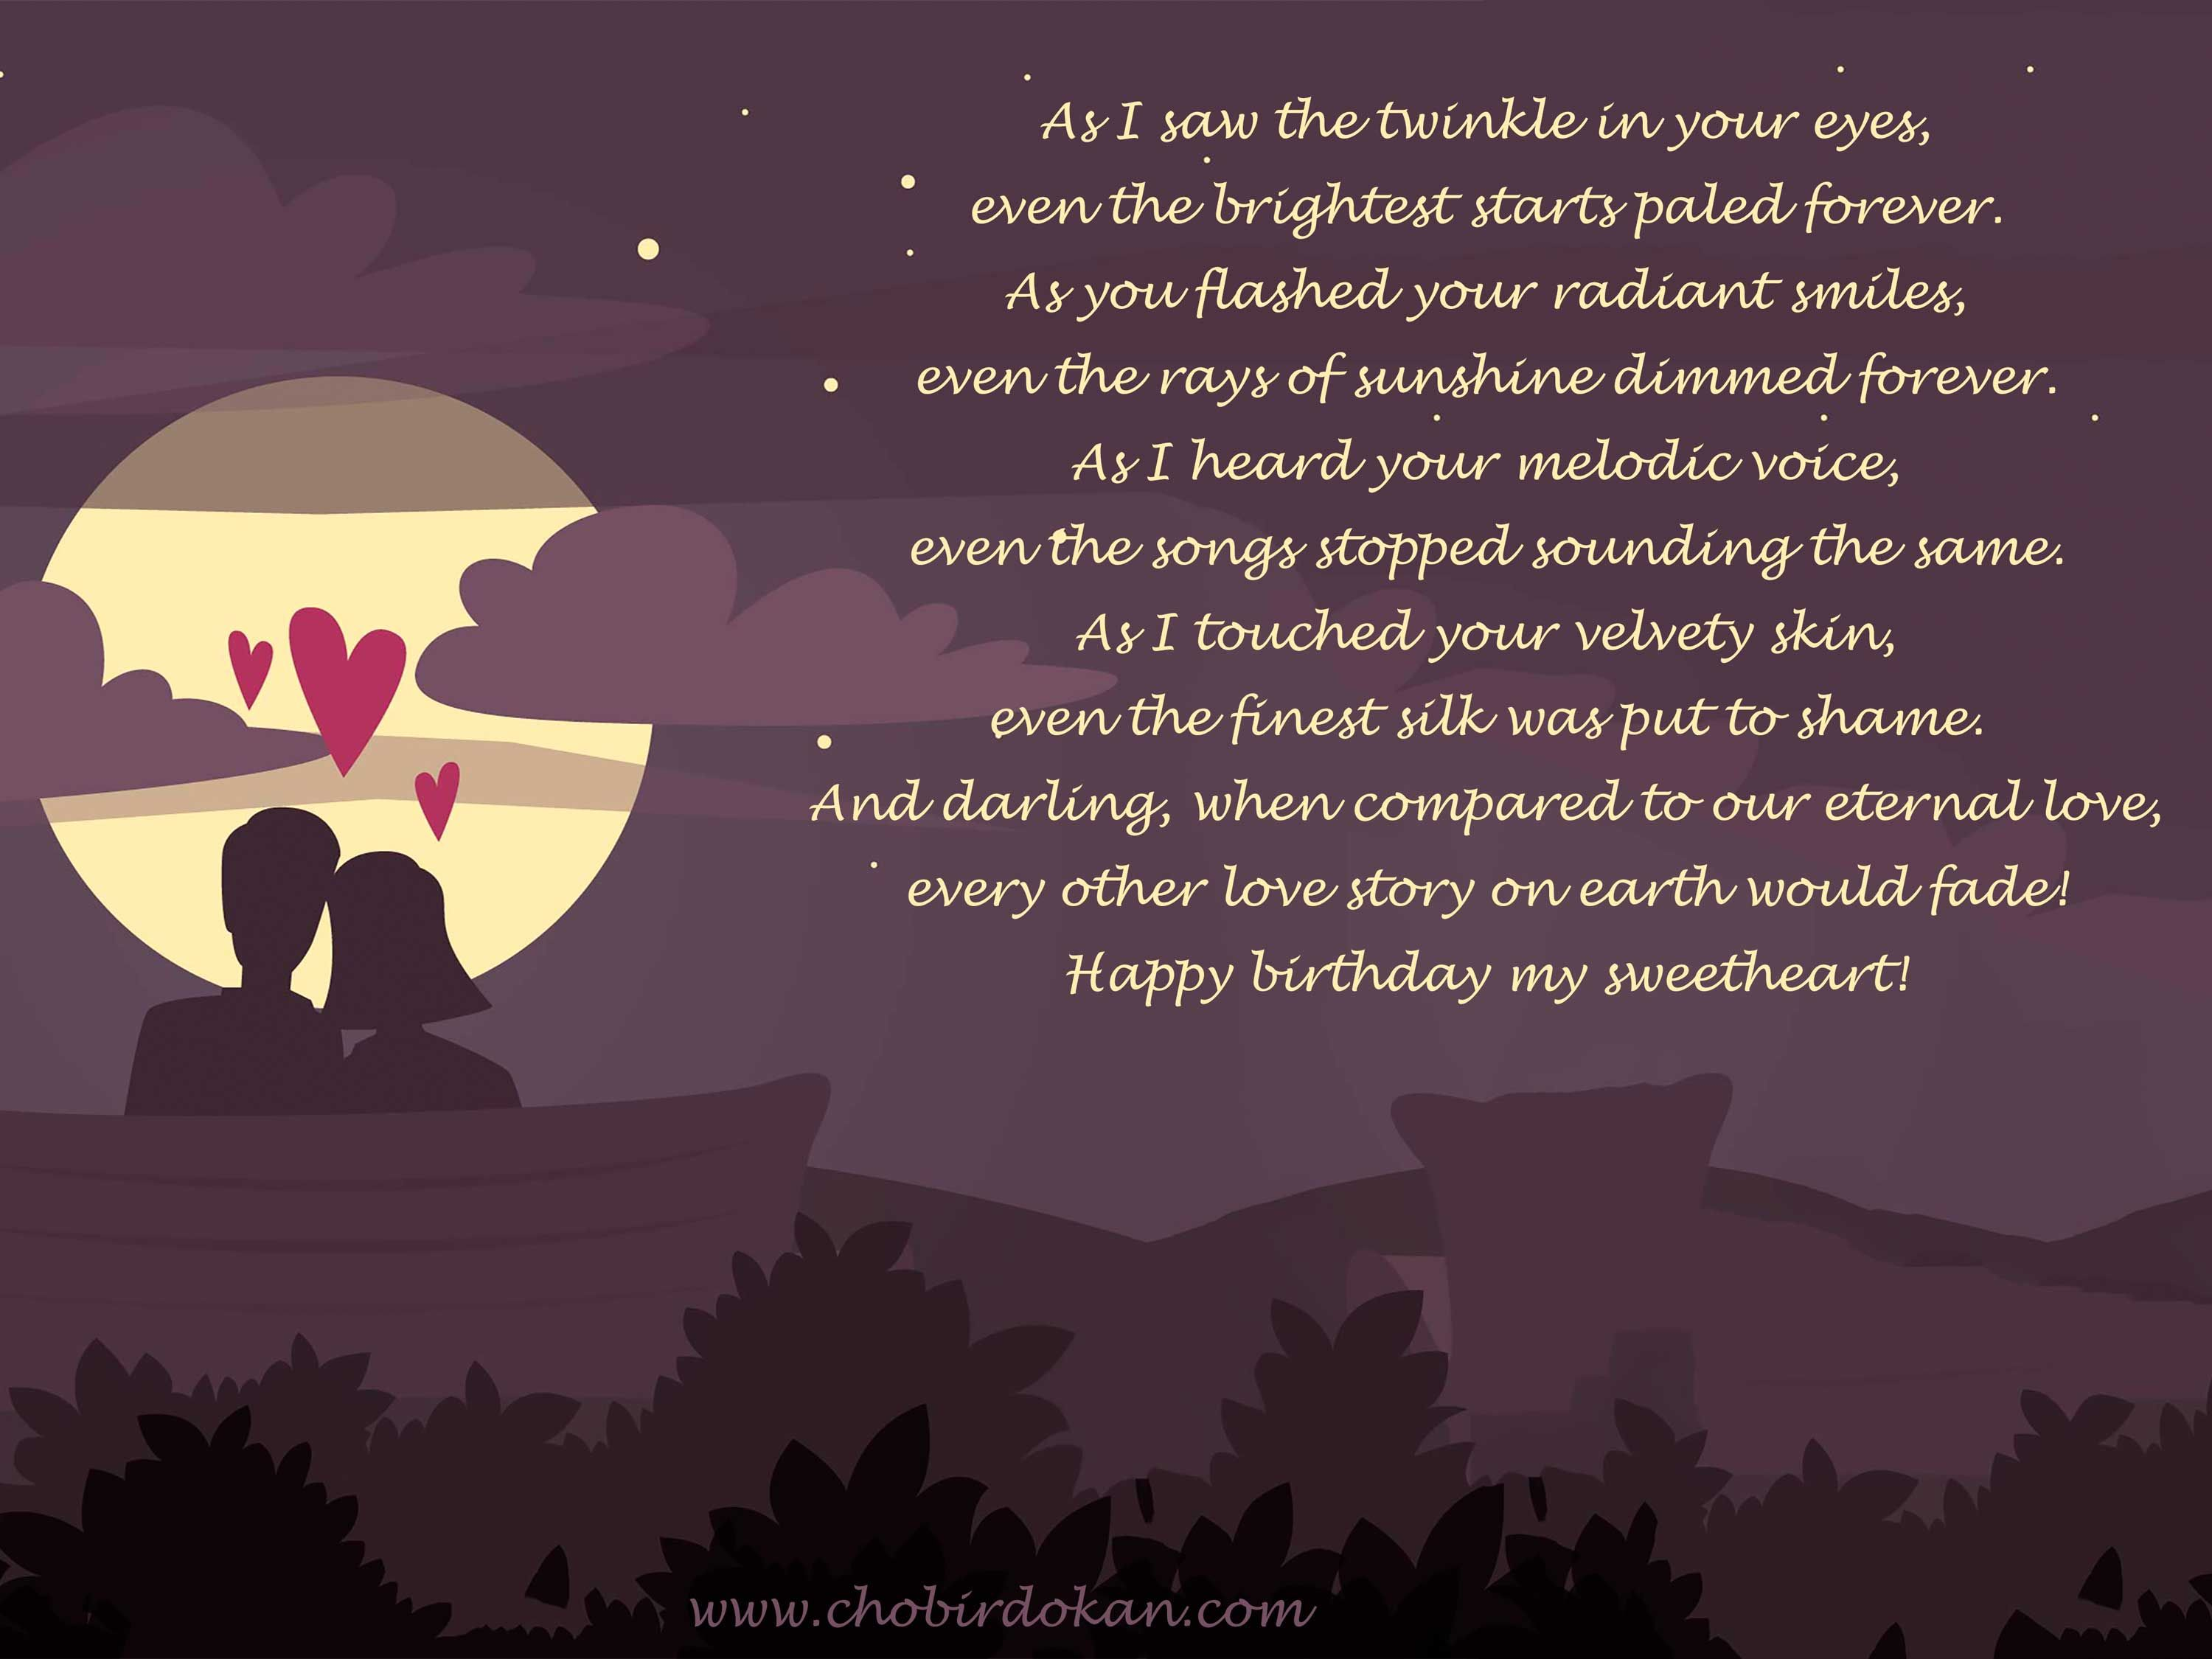 Short birthday love poem